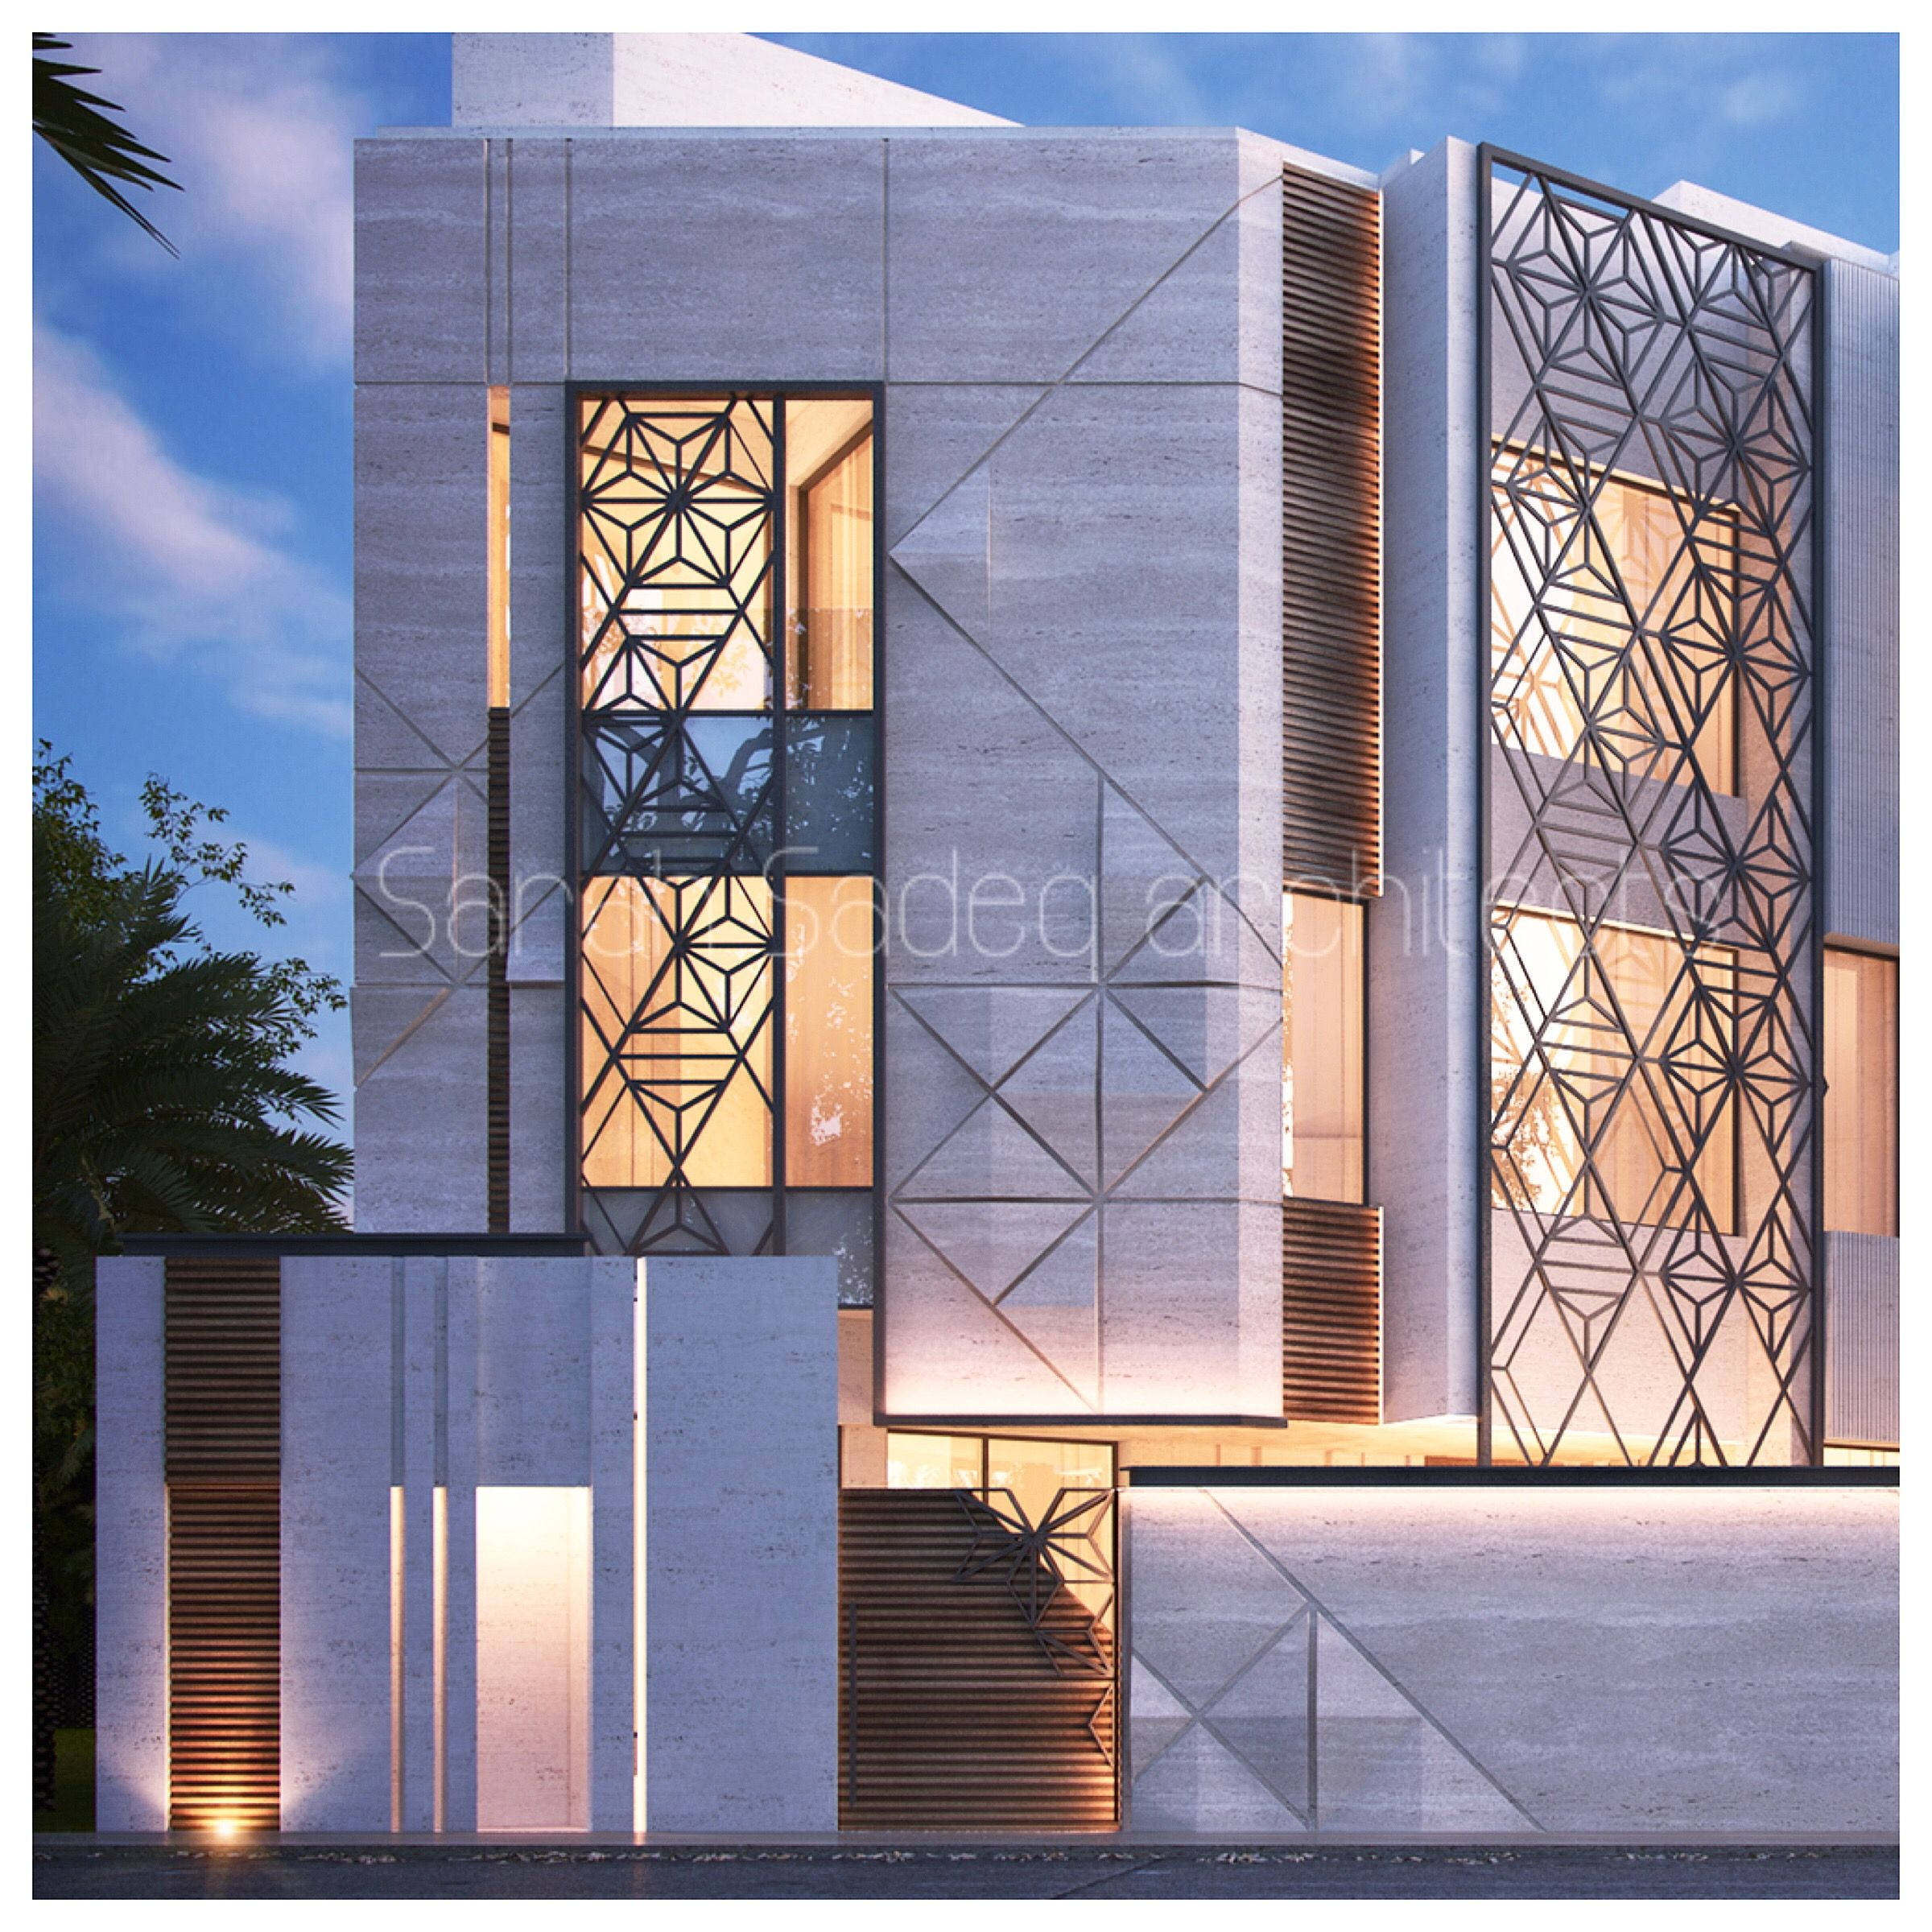 Private Villa Sarah Sadeq Architects Kuwait: Private Villa Kuwait Sarah Sadeq Architects